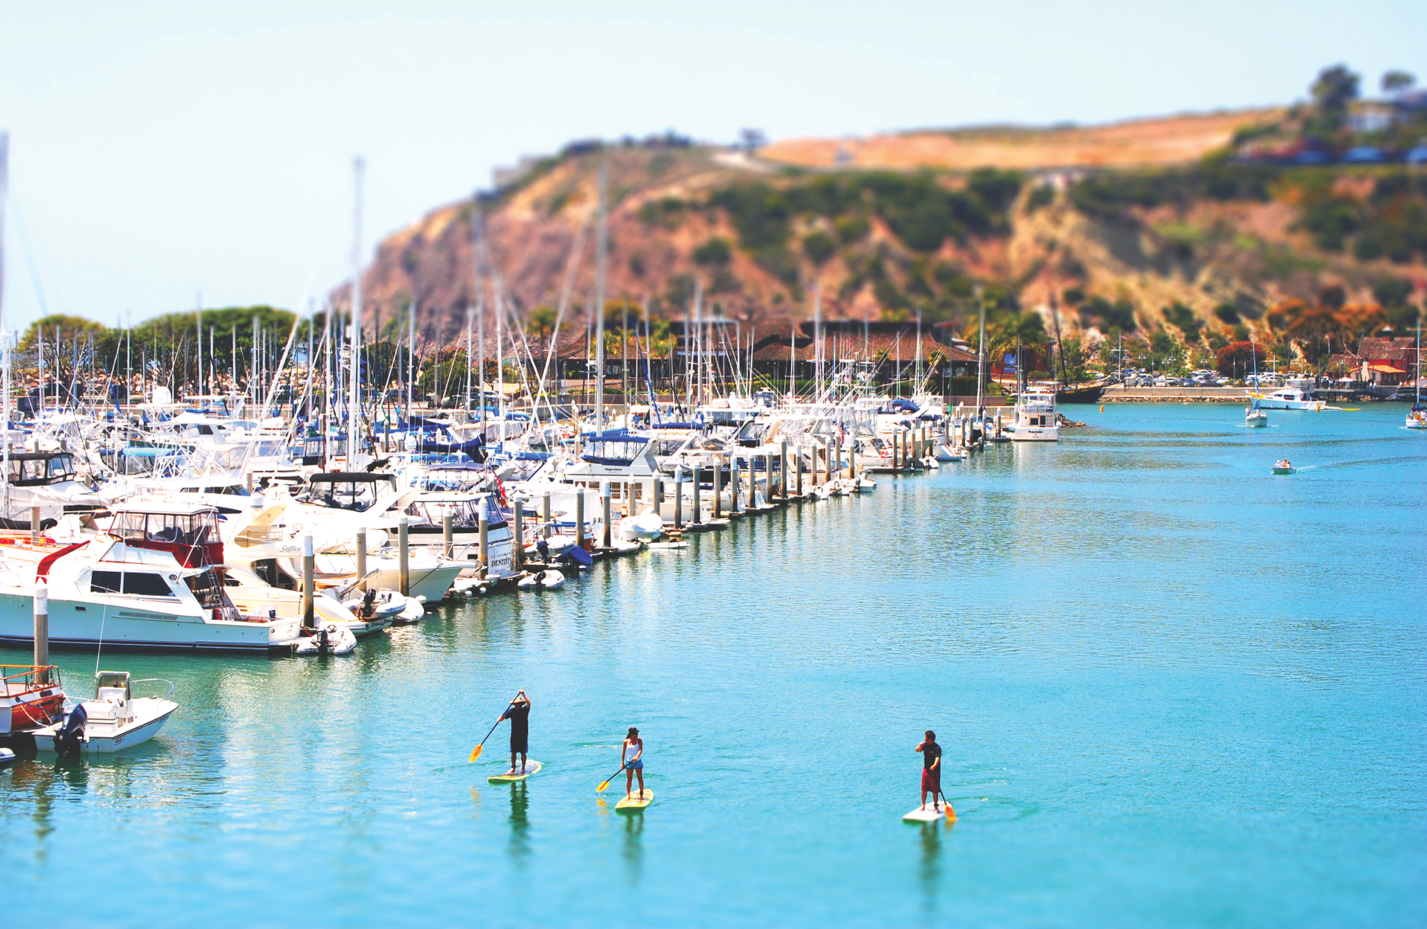 Dana Point Harbor Excursions - paddle boarding through the harbor